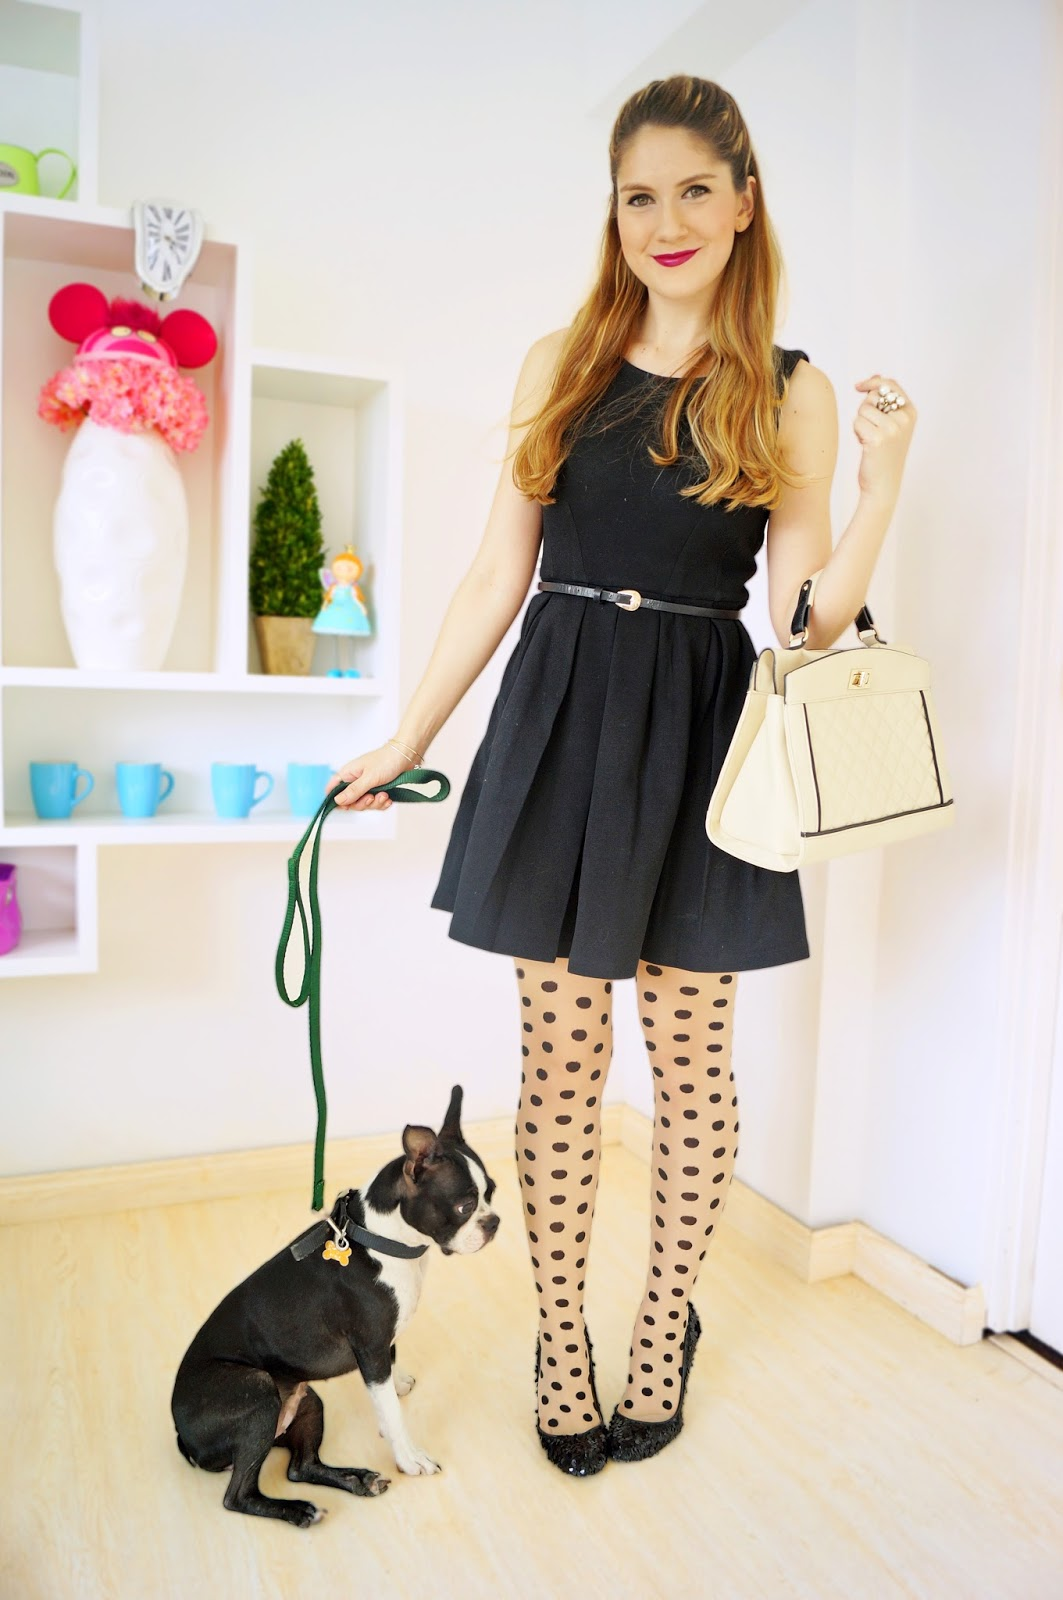 Transform a simple black dress by pairing it with fun tights!